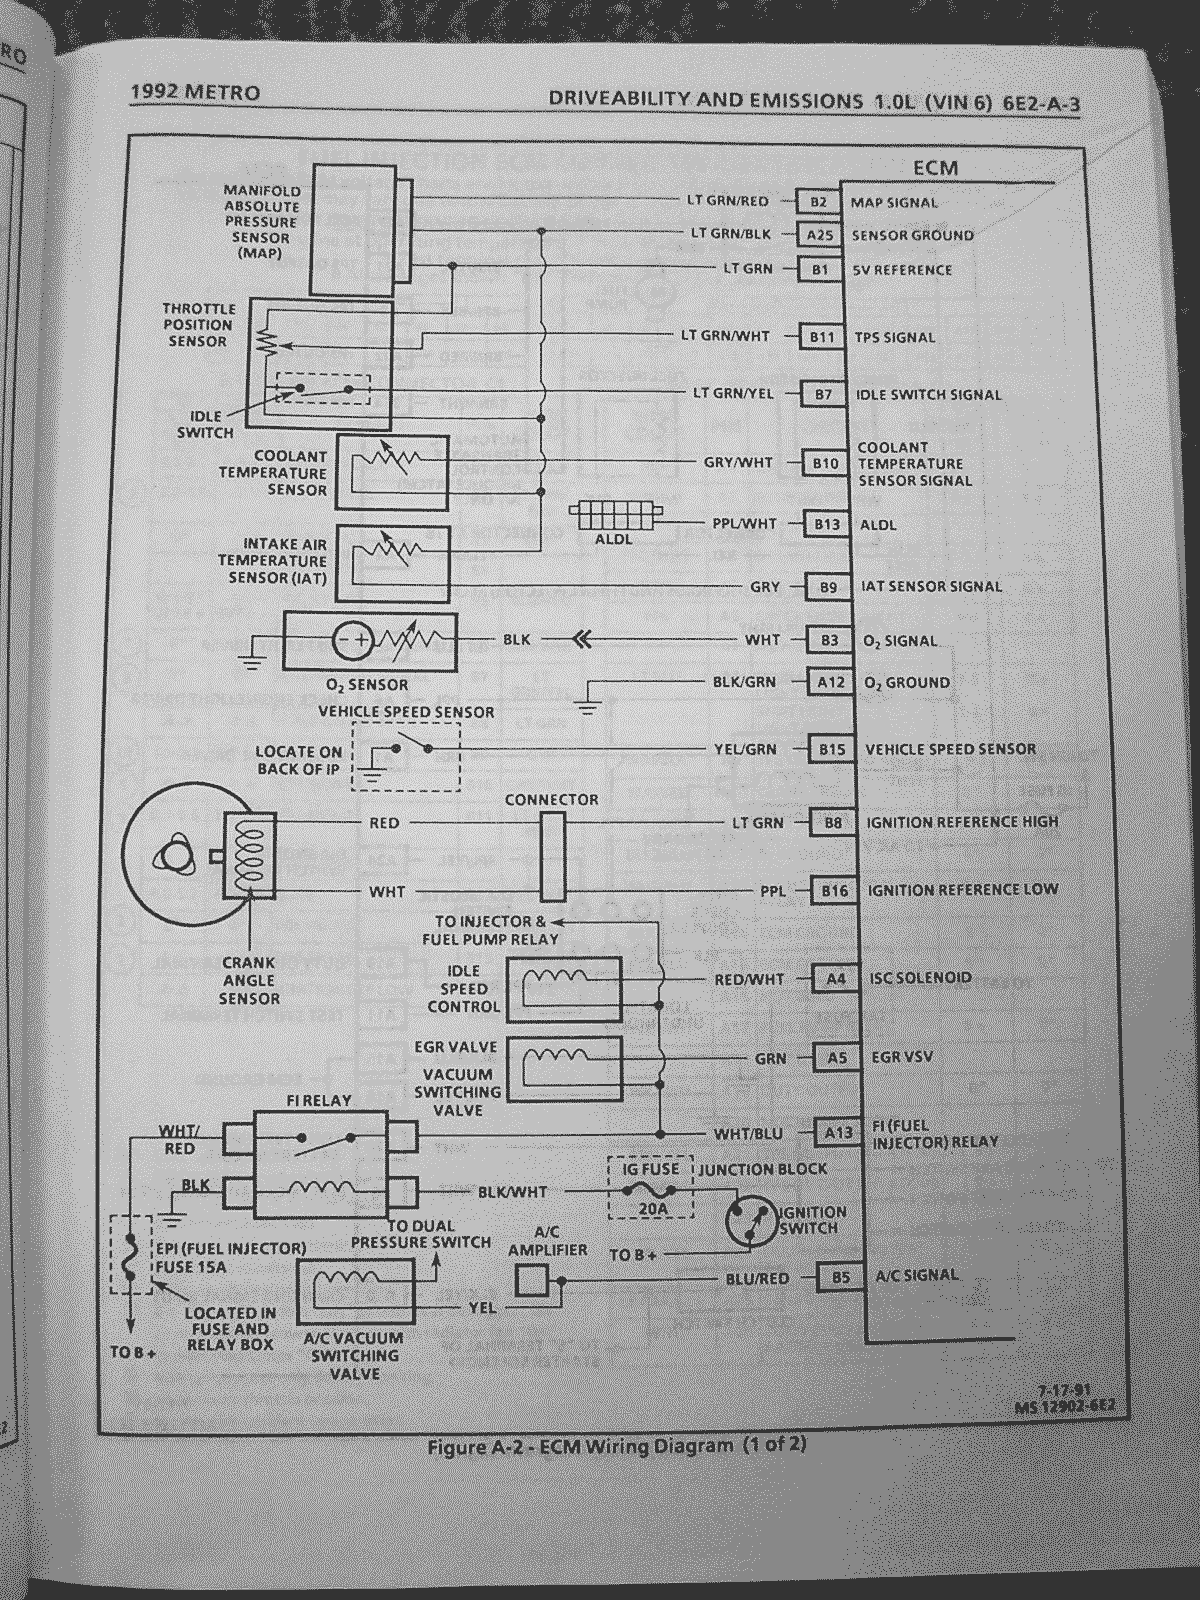 1989 geo metro wiring diagram geo metro and suzuki swift wiring diagrams – metroxfi.com